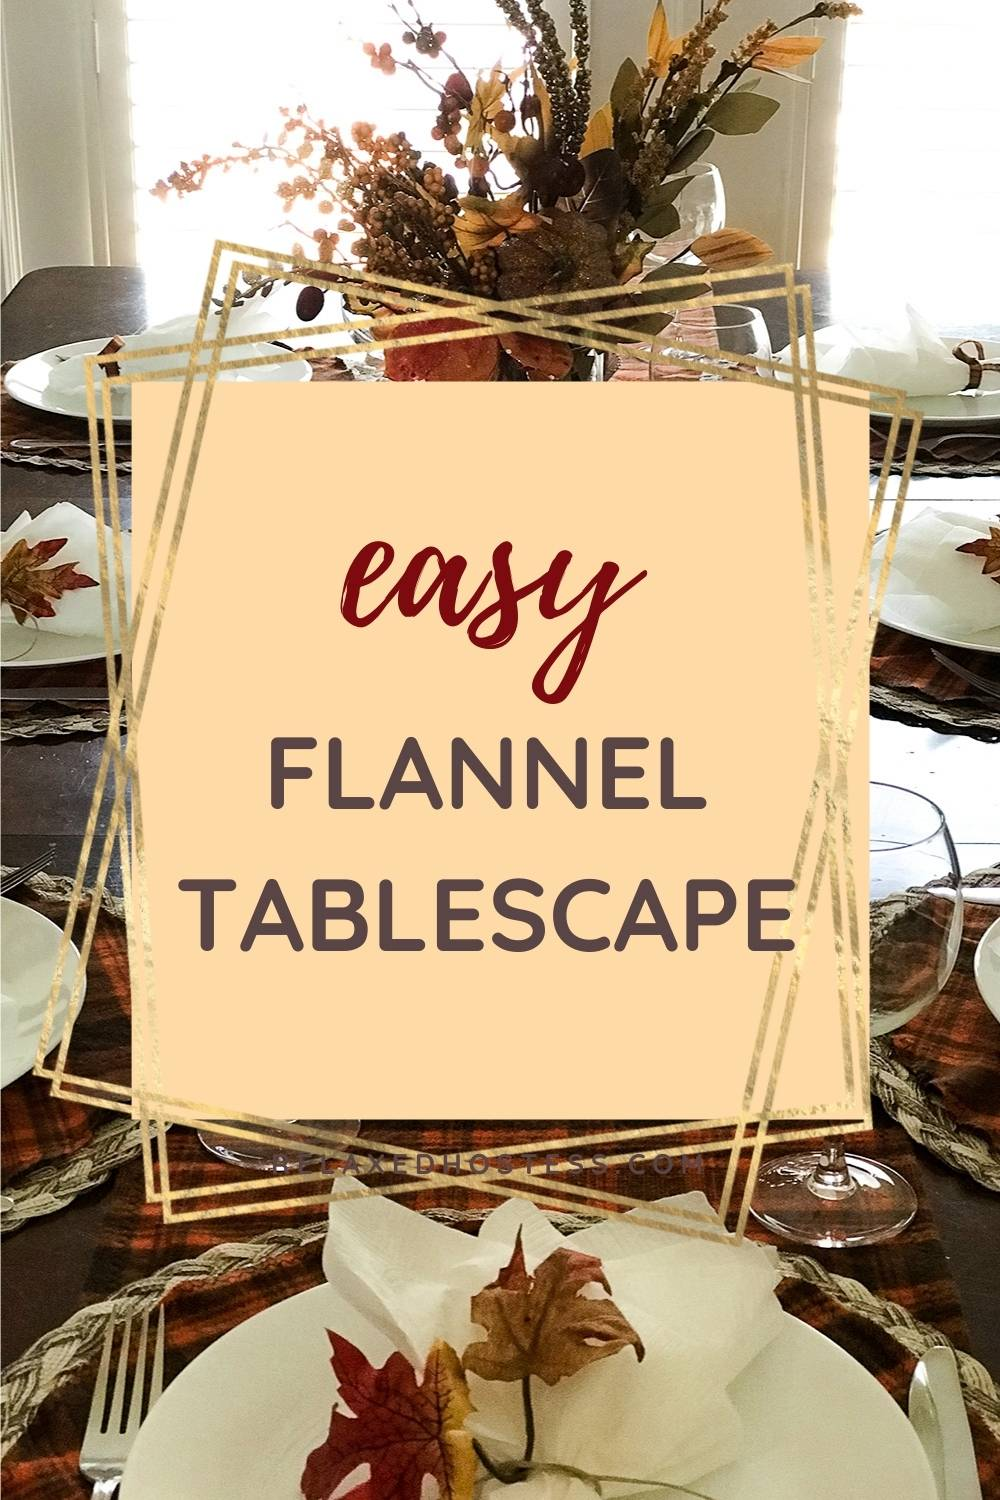 Easy Flannel Tablescape. DIY plaid flannel table runner and placemats.